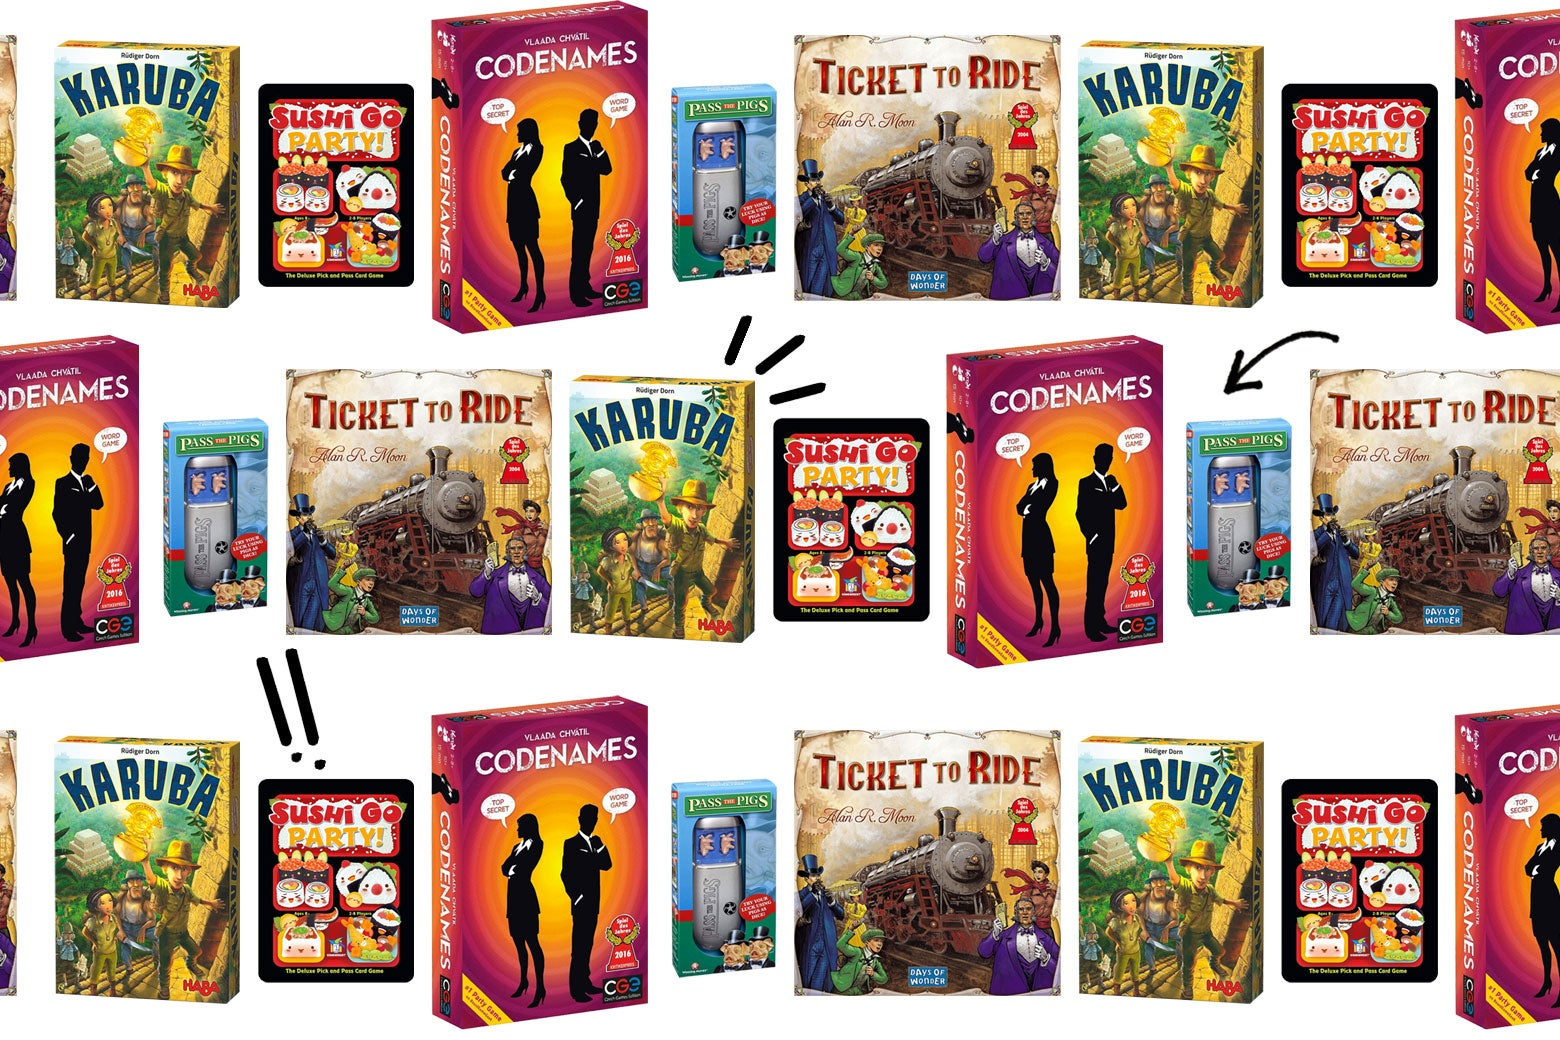 A collage of board game boxes featuring Ticket to Ride, Codenames, Karuba, and more.